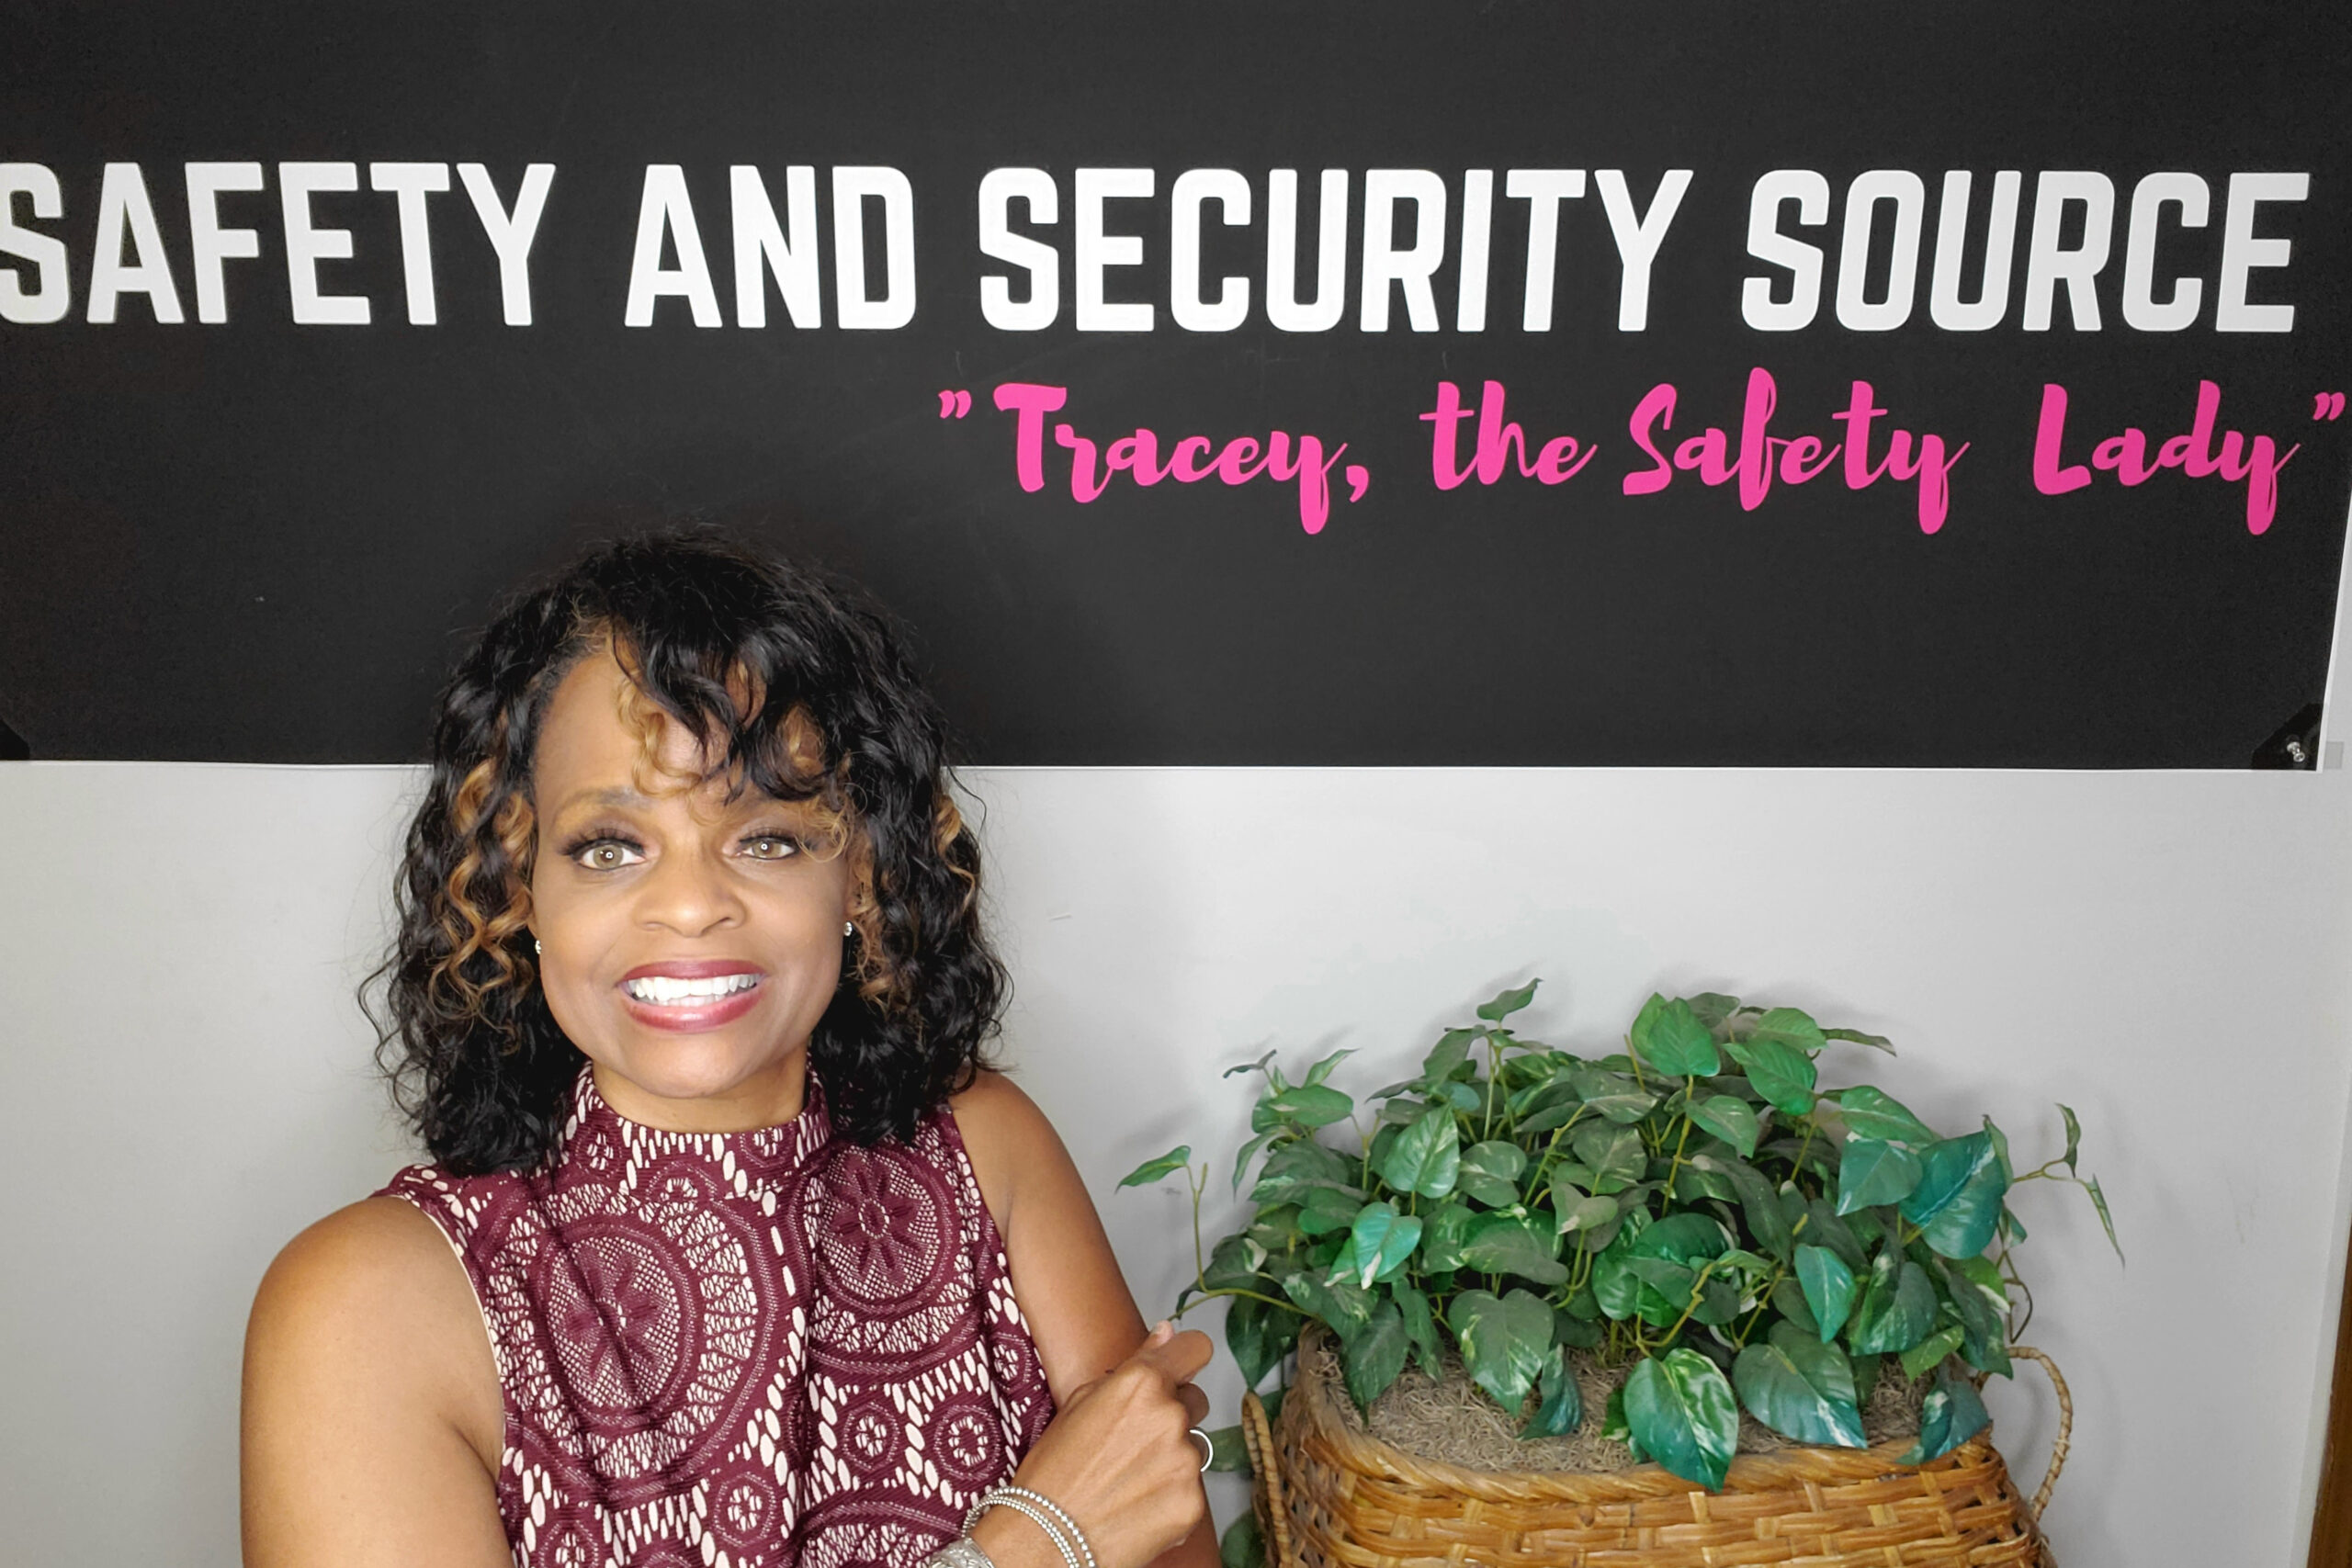 """Tracey """"The Safety Lady"""" Hawkins"""